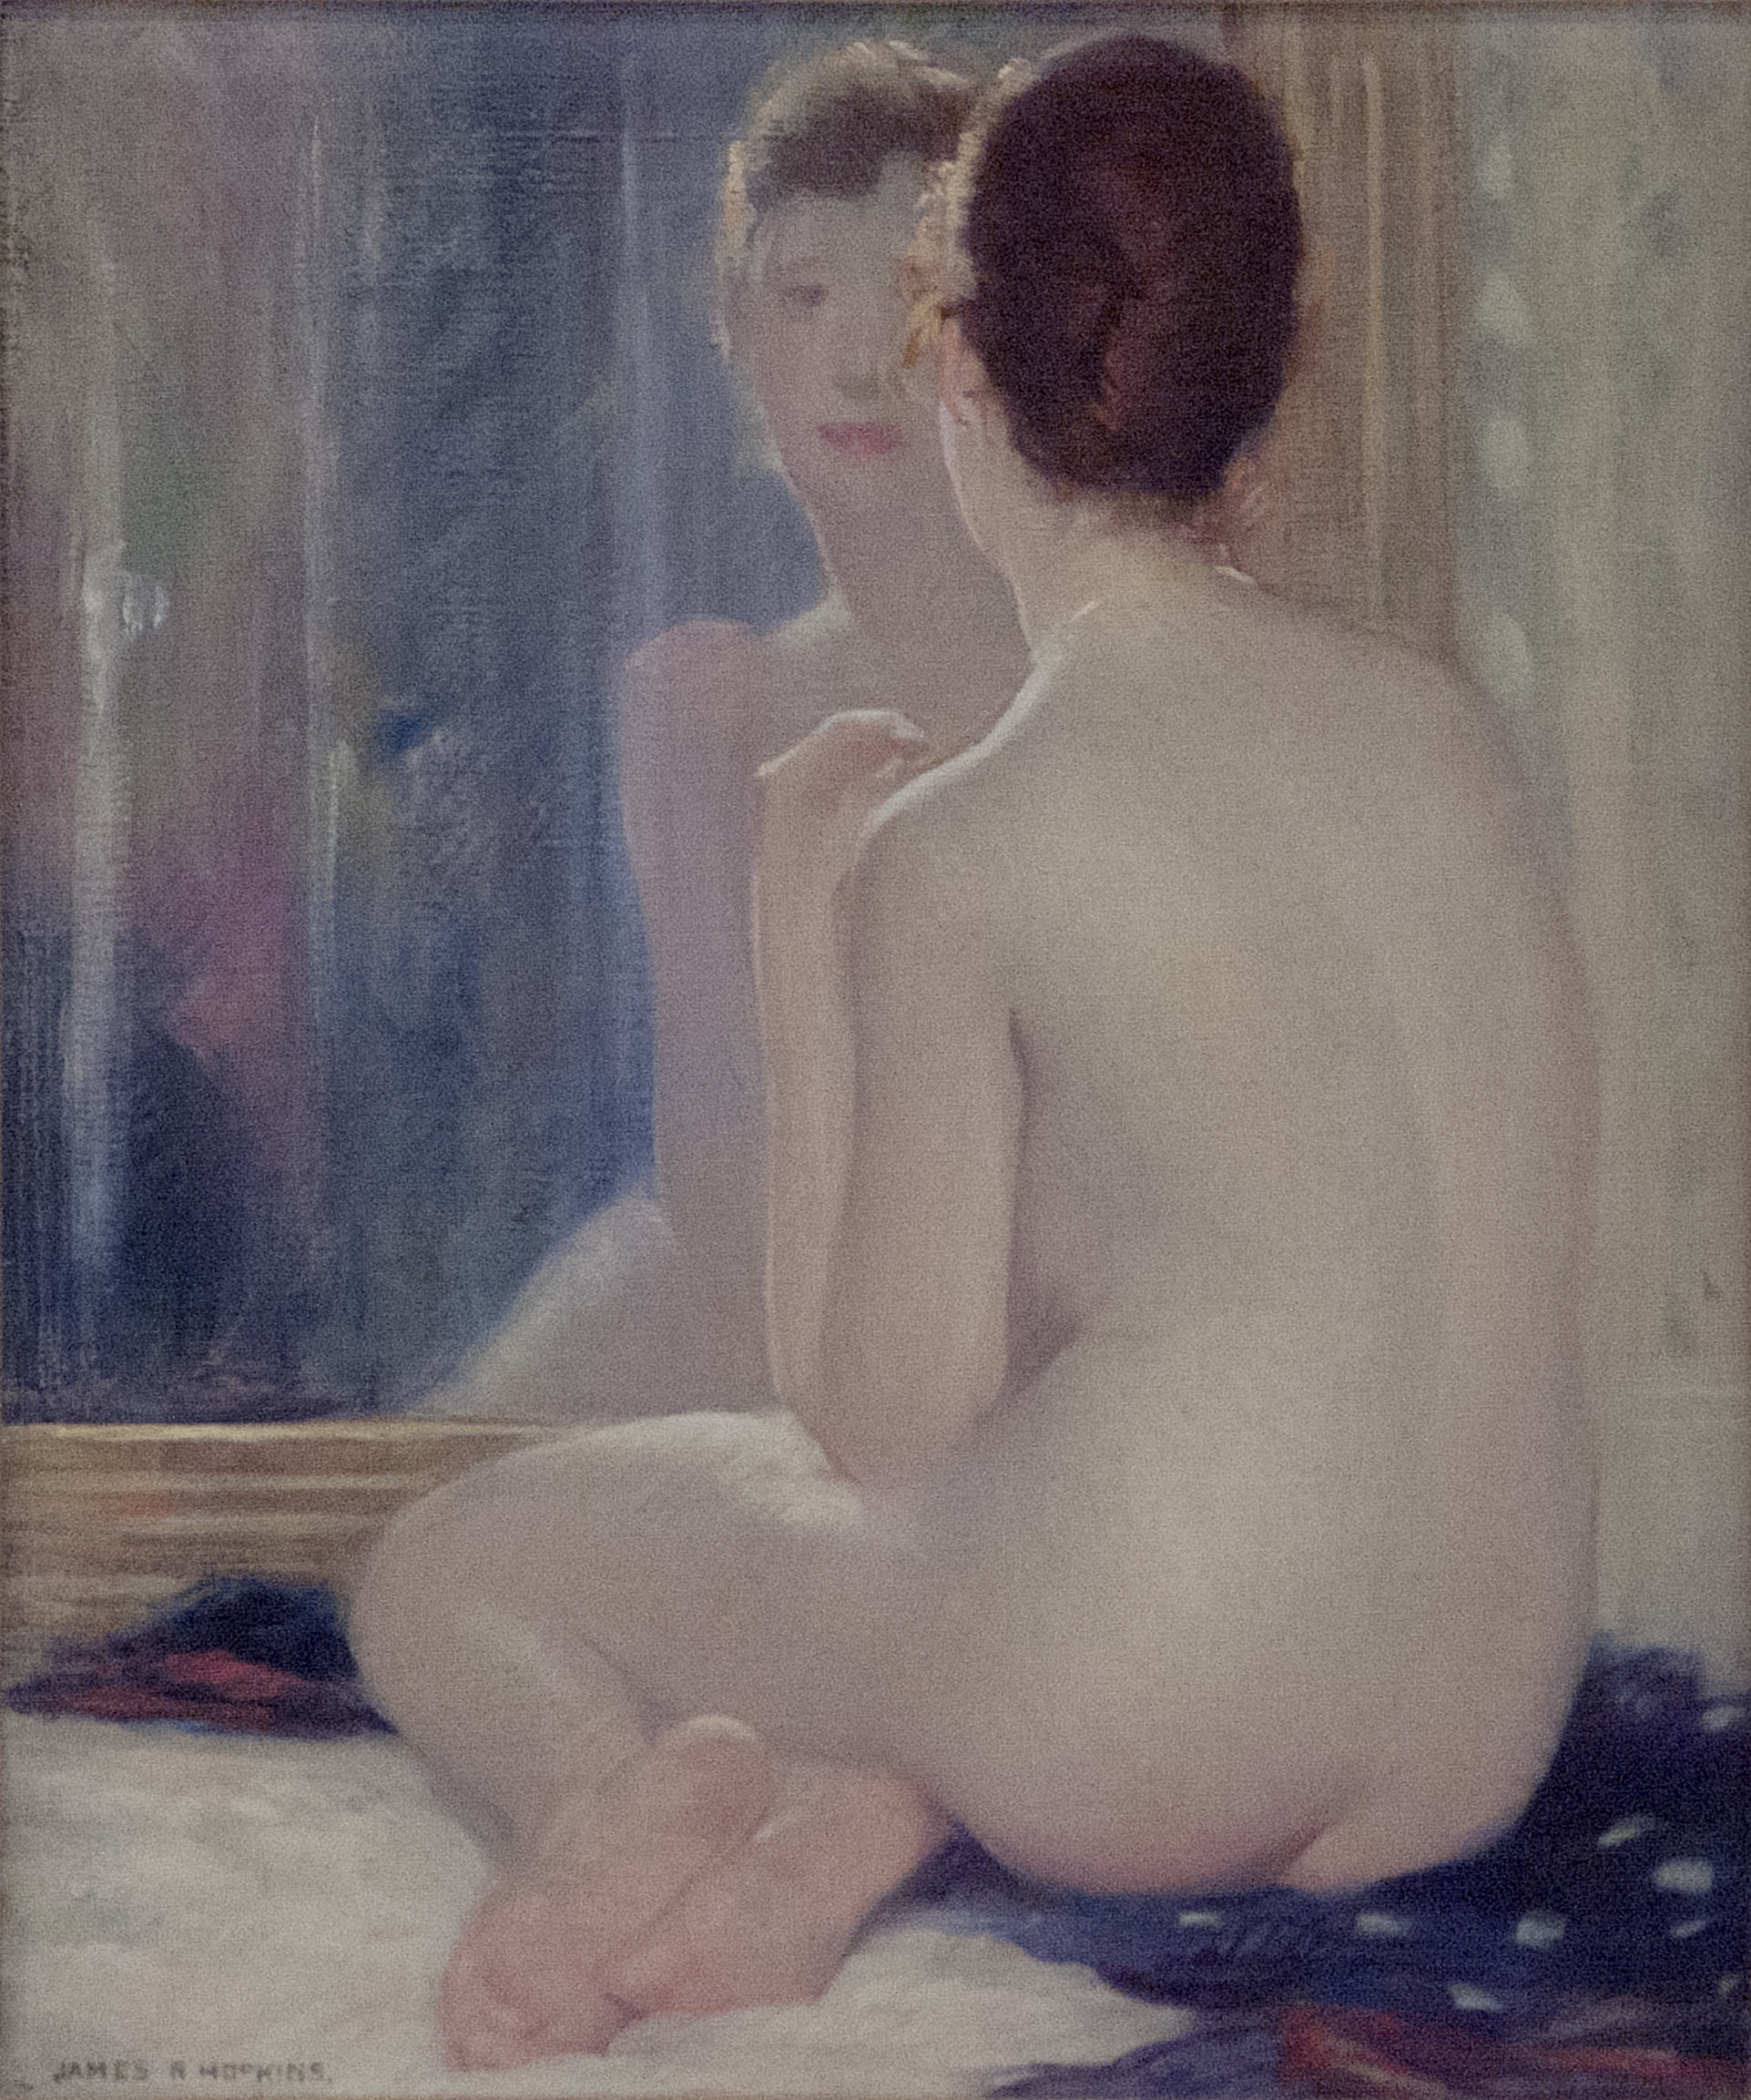 James R. Hopkins | NUDE REFLECTED IN A MIRROR | oil on canvas | 18 x 15"